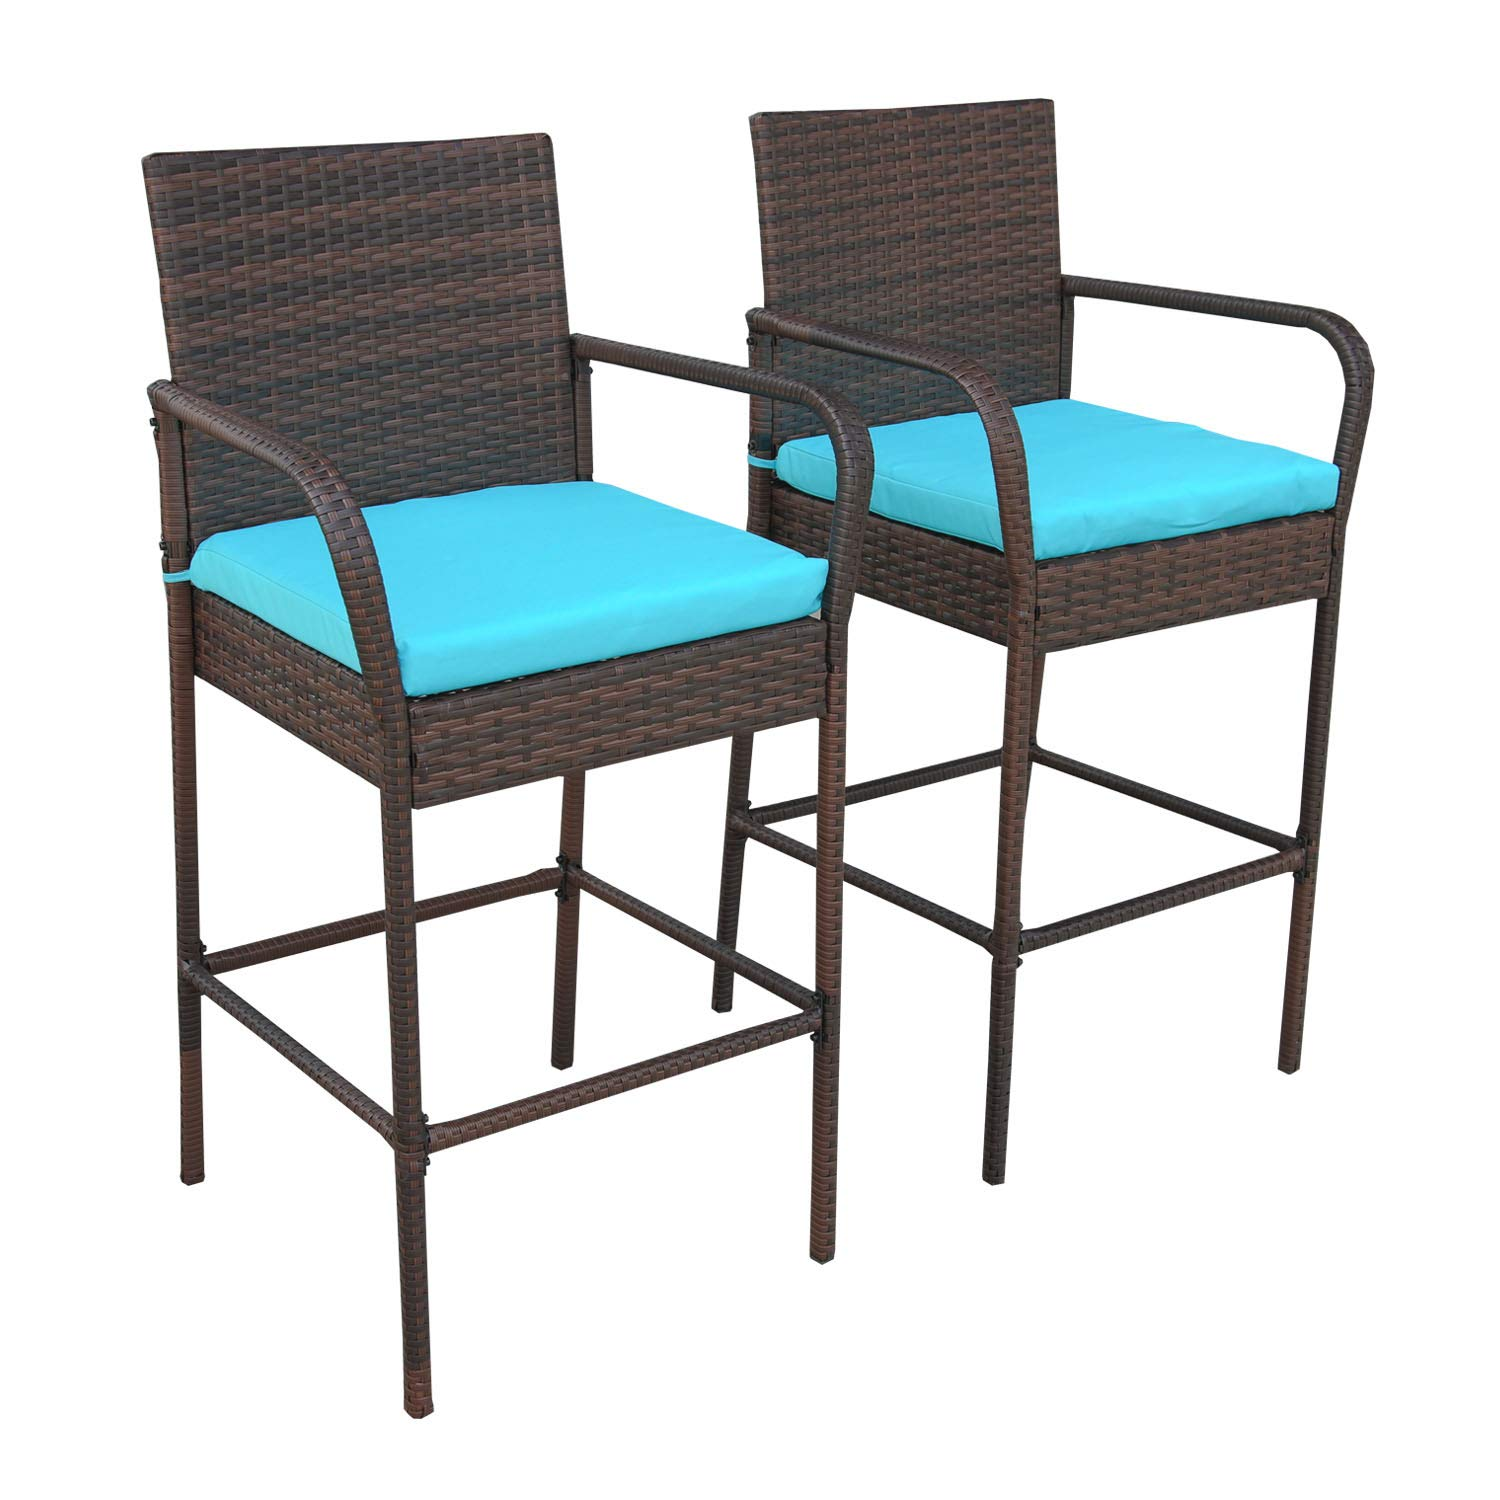 VALITA Patio PE Rattan Cushioned Barstool – Outdoor Wicker High Chair, Royal Blue Cushions, Set of 2